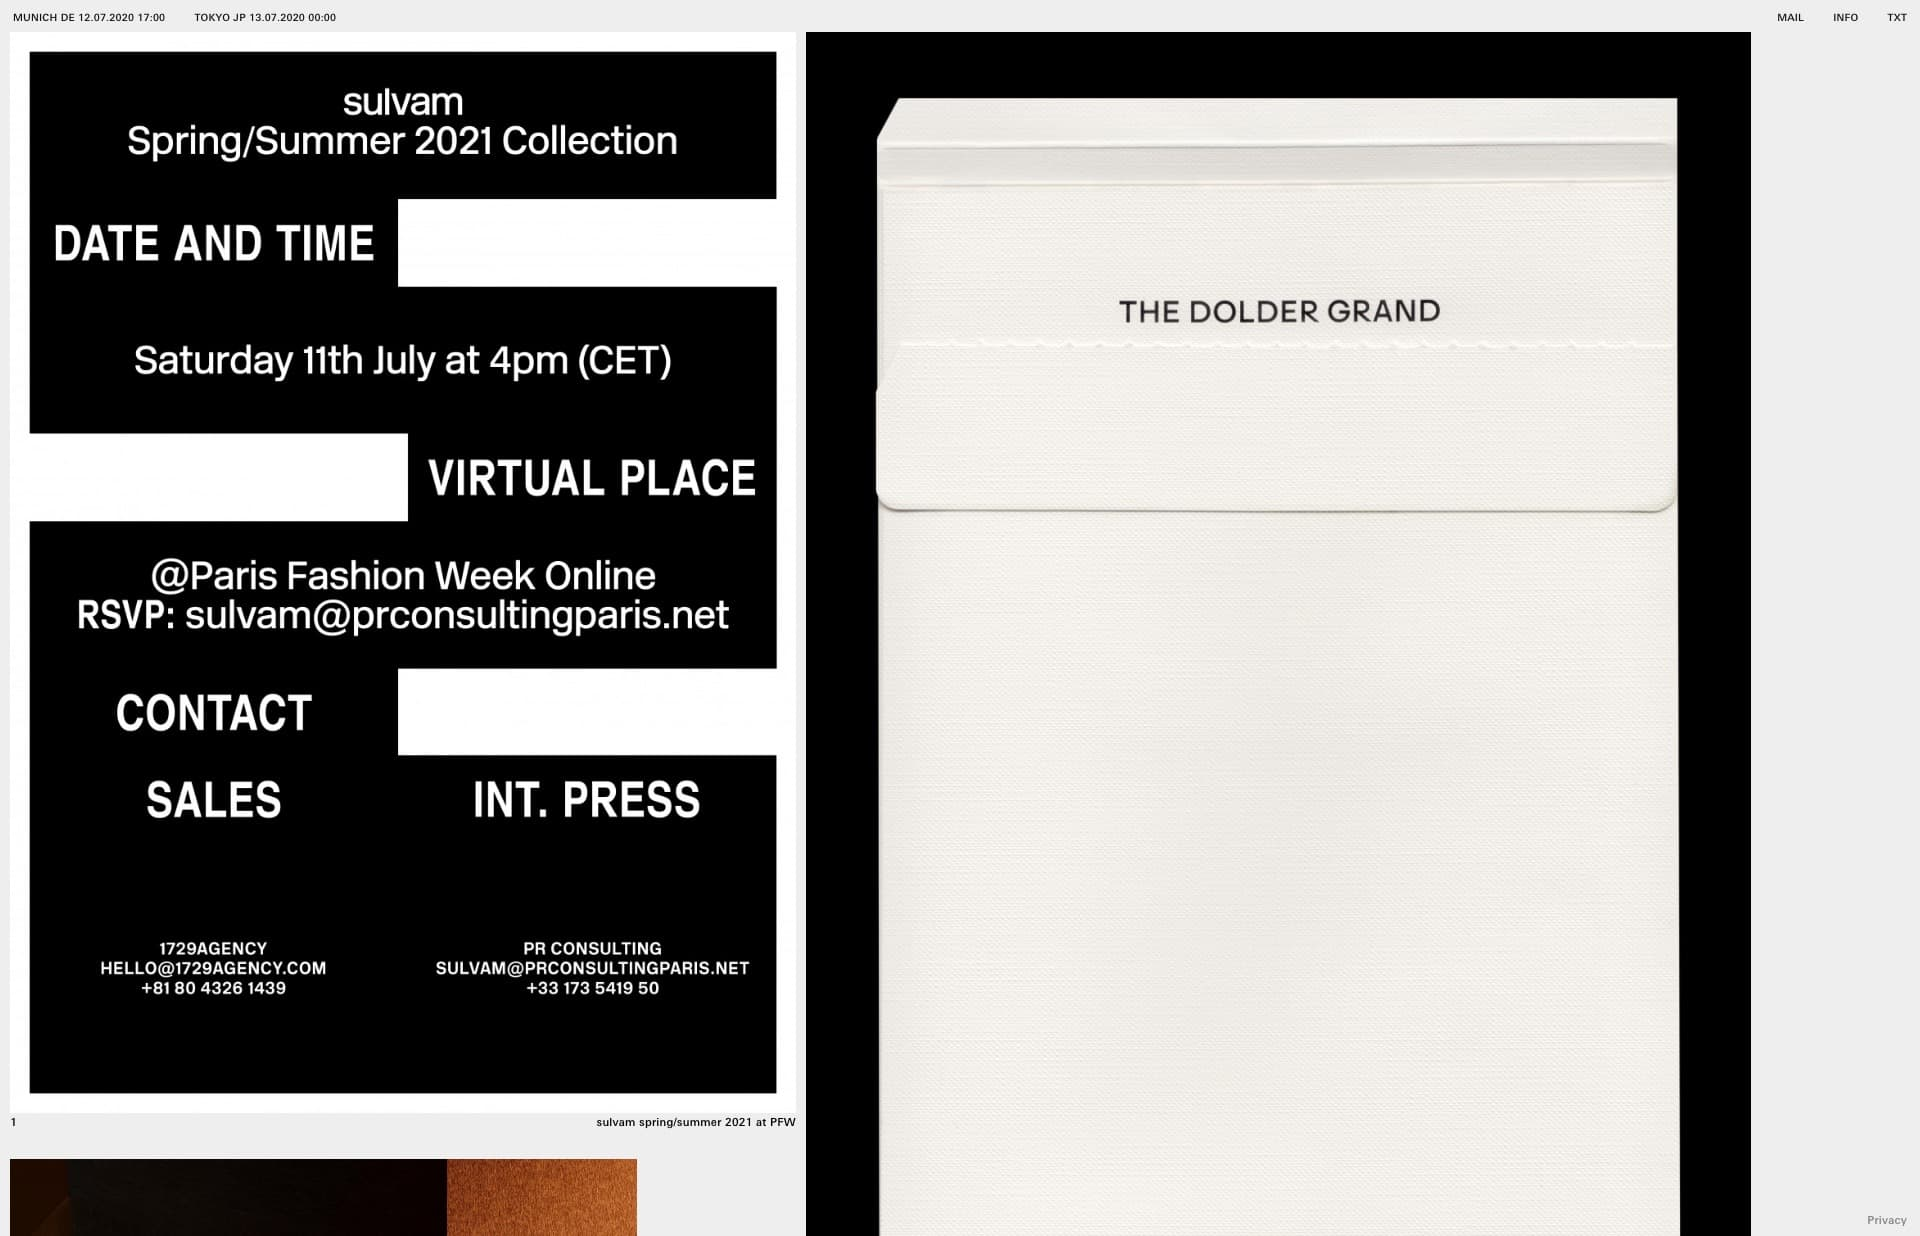 Screenshot of the website Ricardo Ferrol, featured on The Gallery, a curated collection of minimal websites